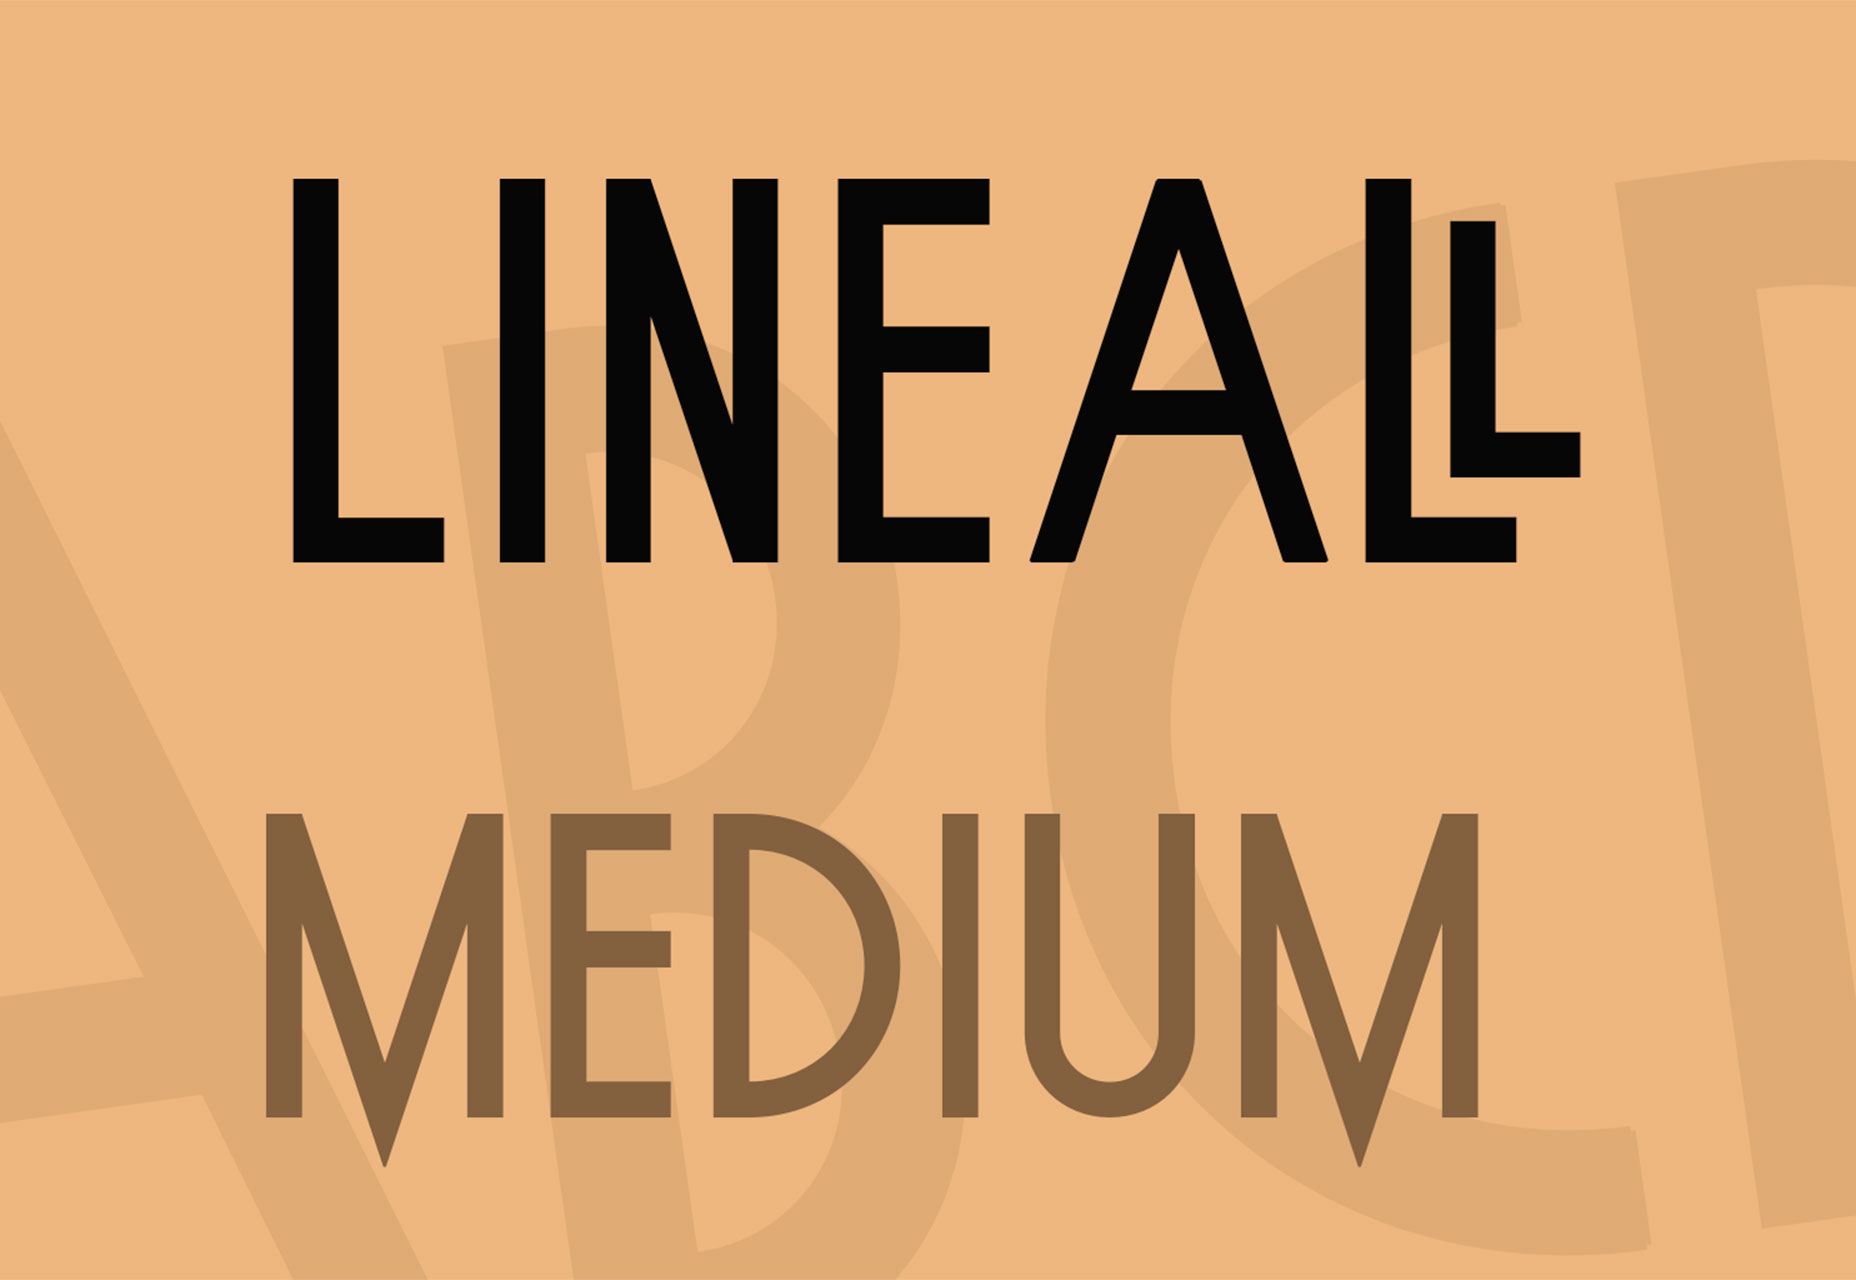 lineall